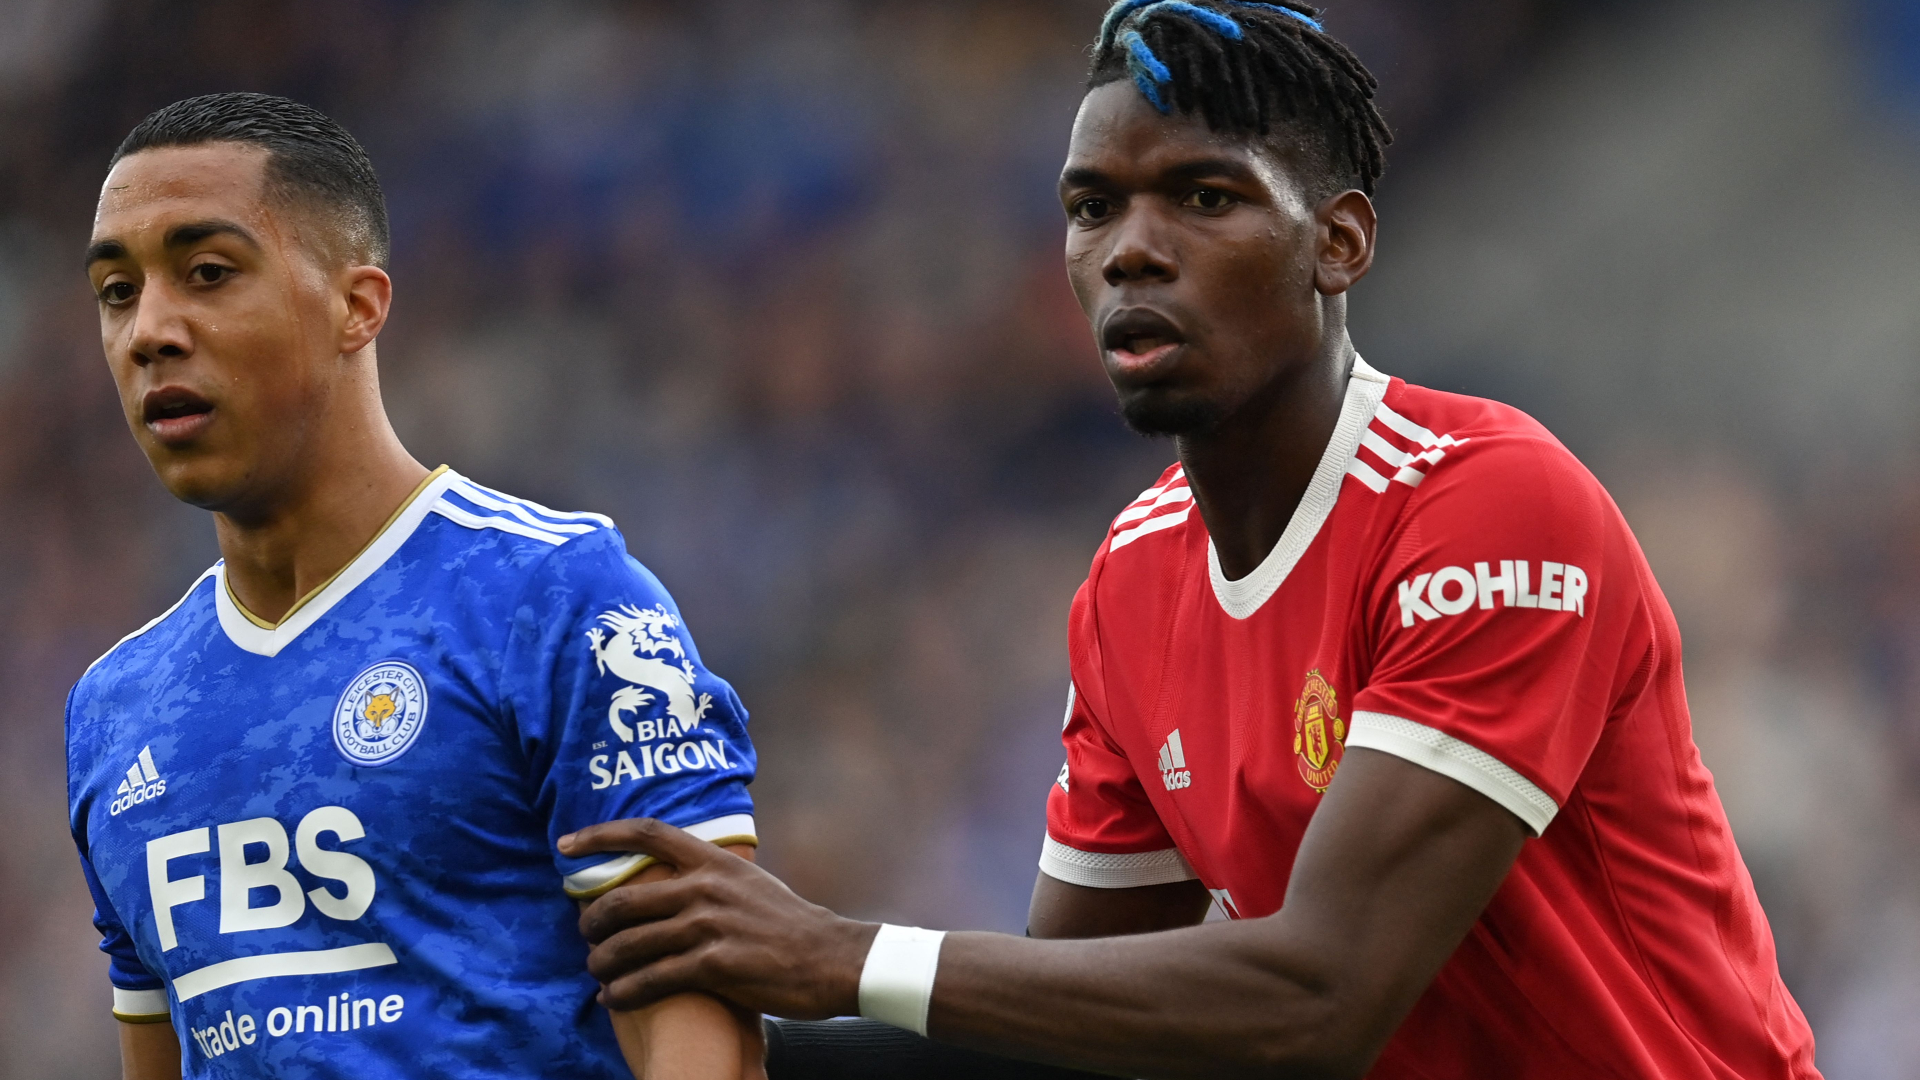 'We deserved to lose' – Man Utd need more 'experience & arrogance', says Pogba